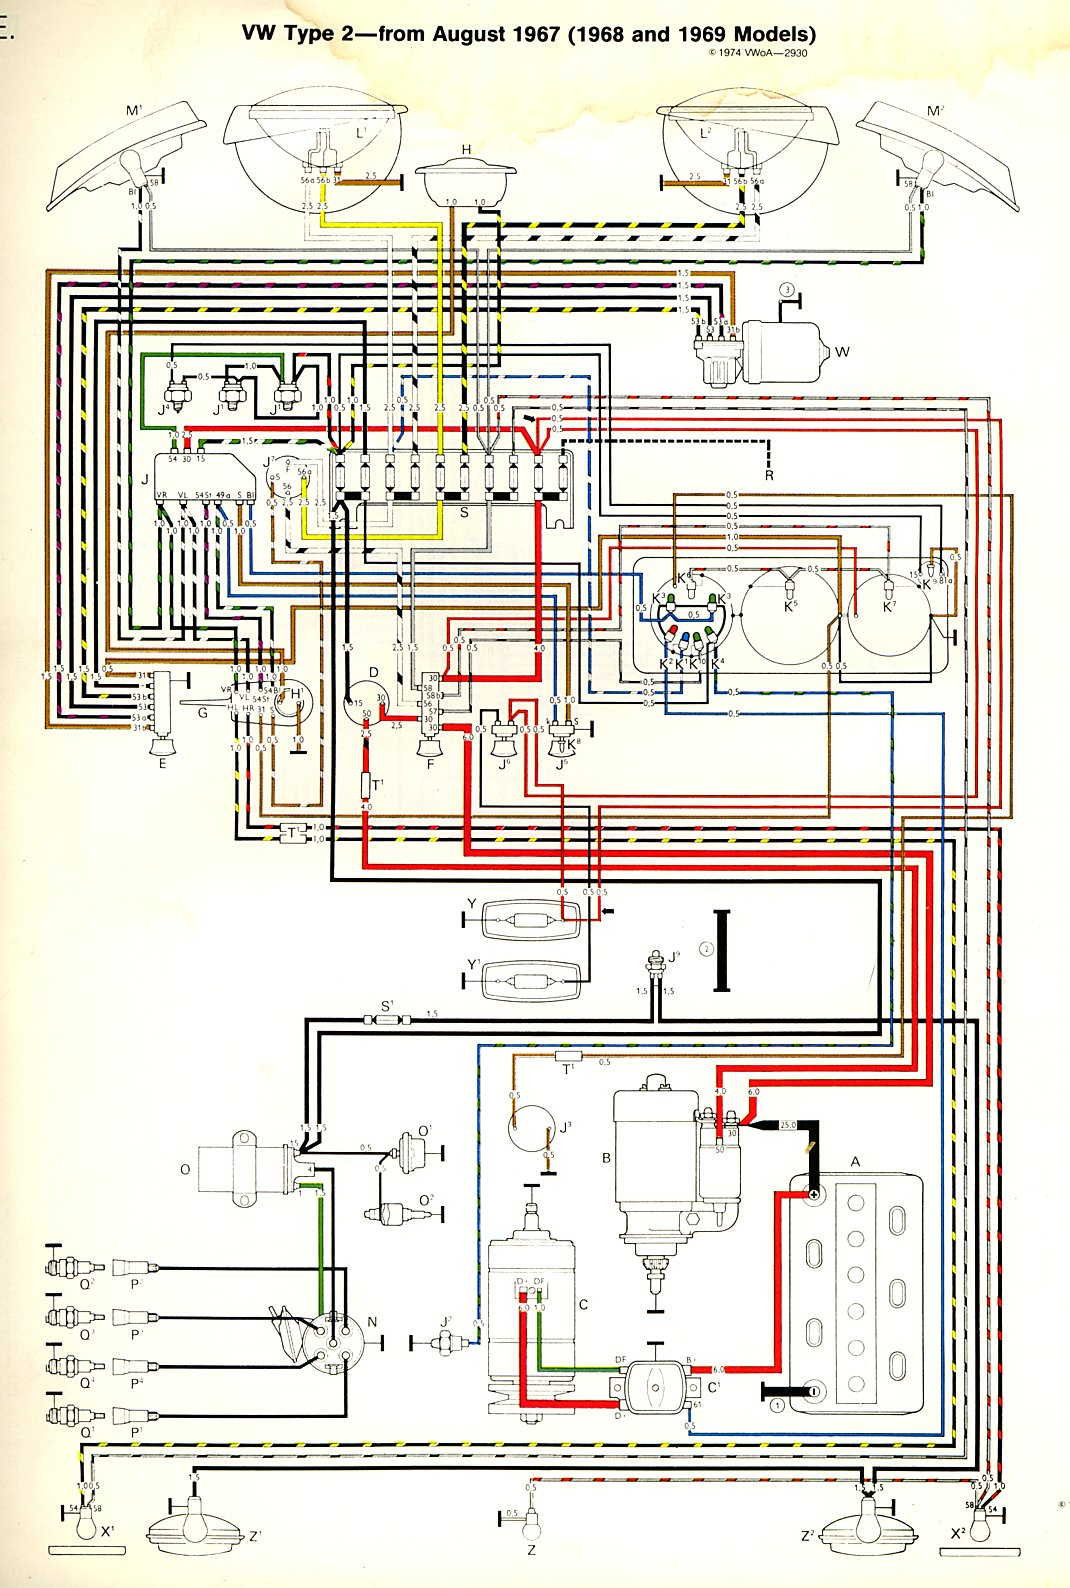 baybus_6869a 1968 69 bus wiring diagram thegoldenbug com 1971 vw bus wiring diagram at honlapkeszites.co